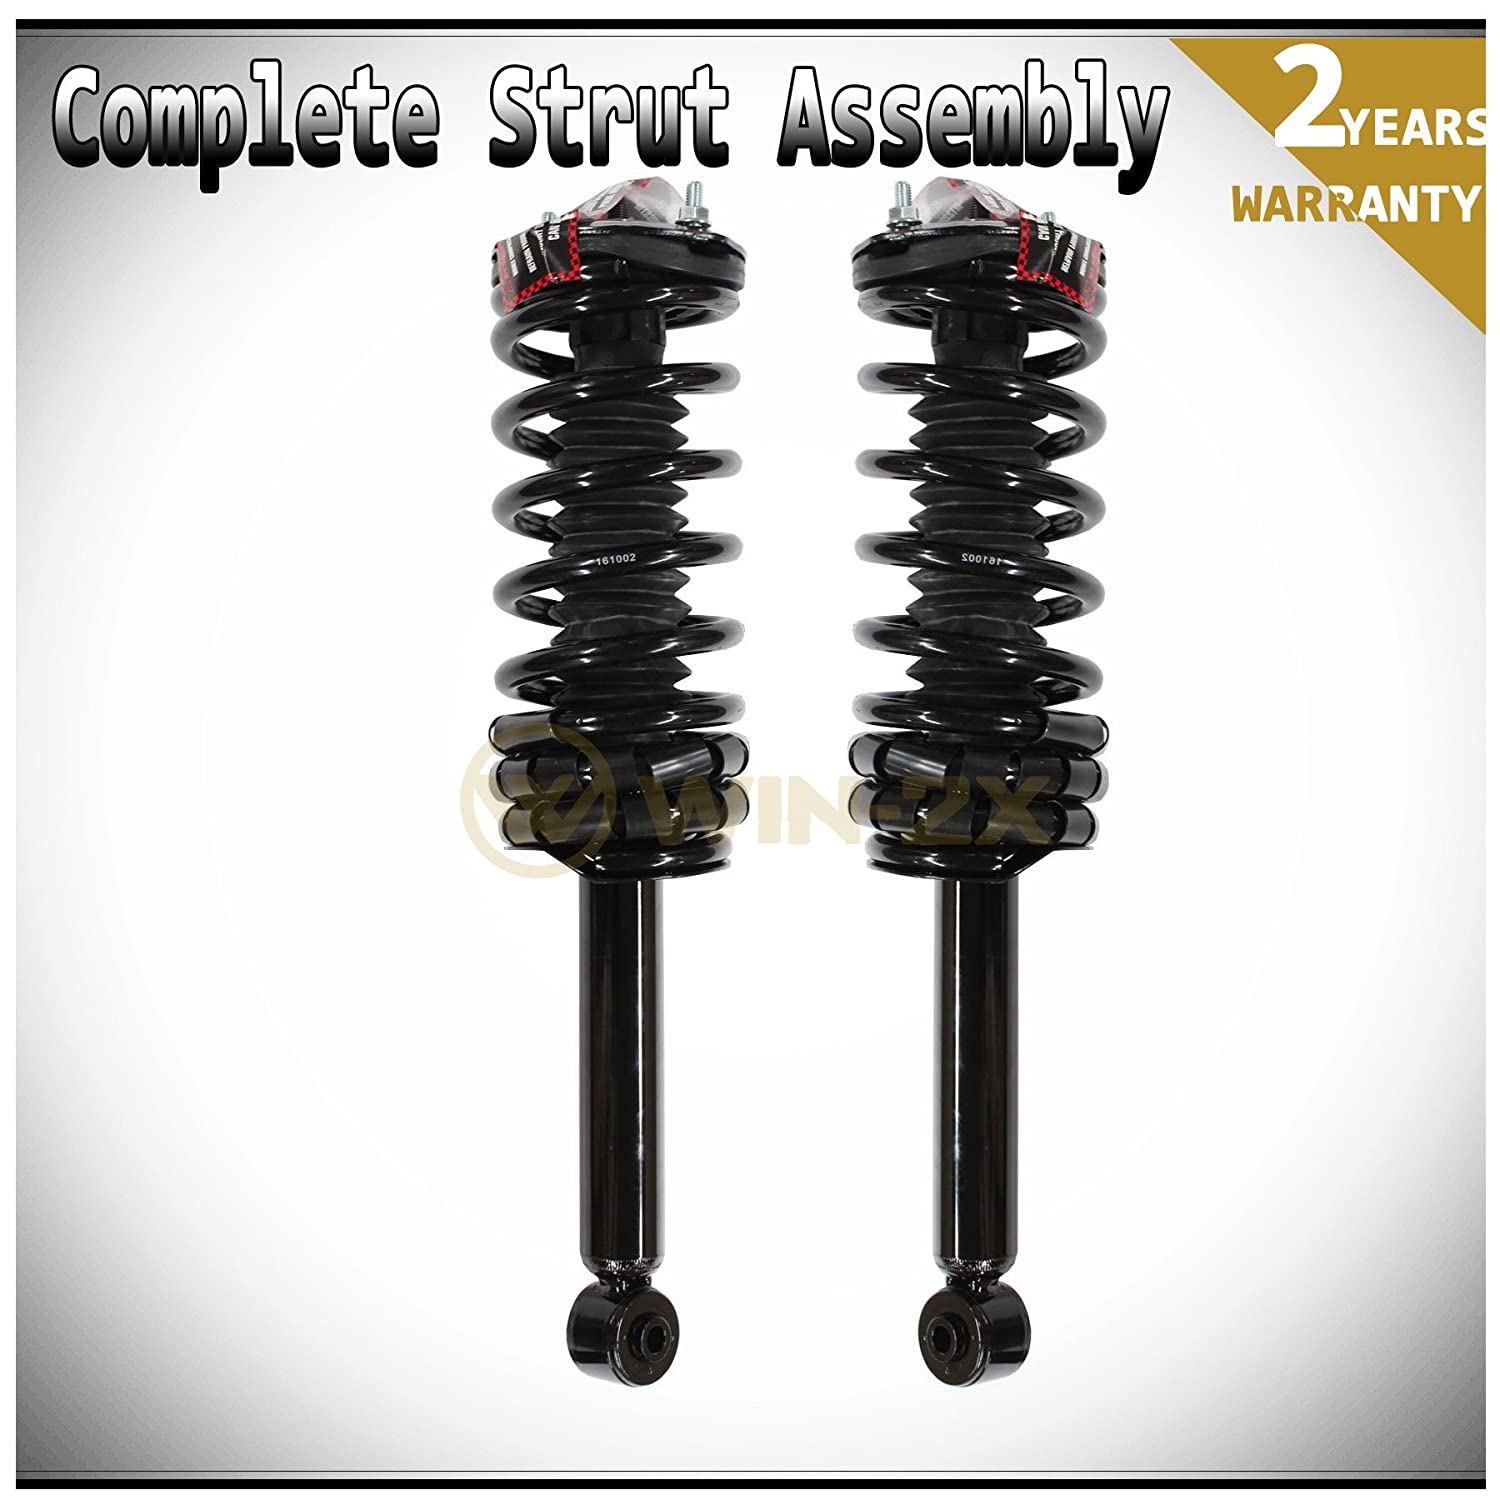 WIN-2X New 4pcs Front+Rear Right+Left Quick Complete Suspension Shock Struts /& Coil Springs Assembly Kit Fit 95-99 Nissan Maxima 96-99 Infiniti I30